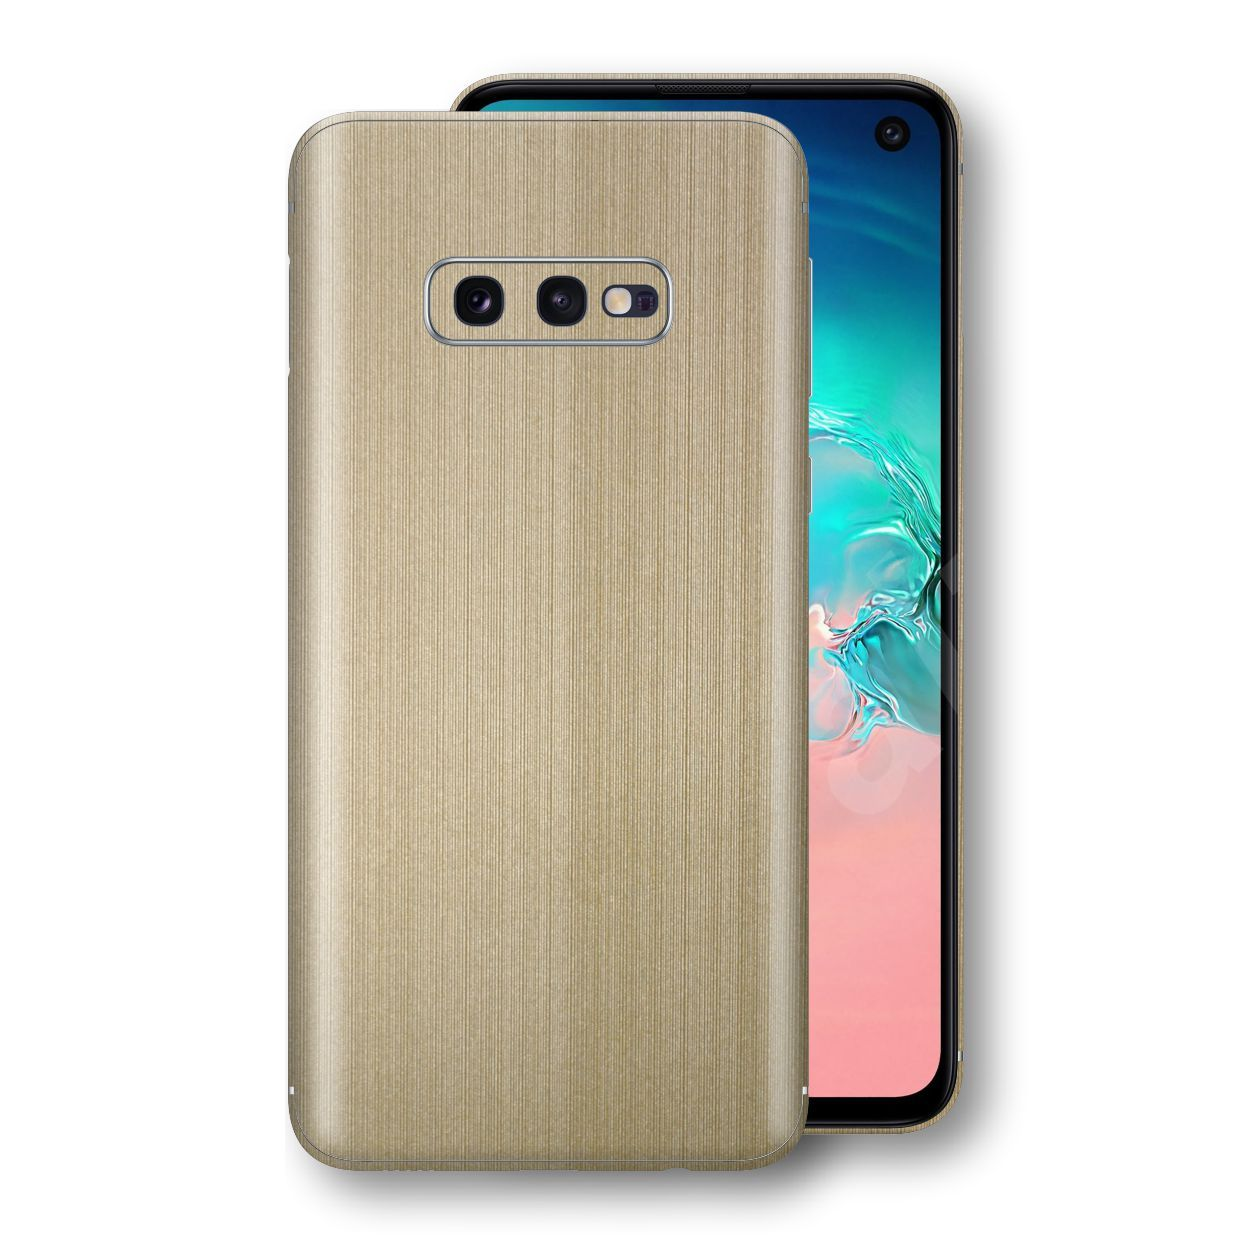 Samsung Galaxy S10e Premium Brushed Champagne Gold Metallic Metal Skin, Decal, Wrap, Protector, Cover by EasySkinz | EasySkinz.com